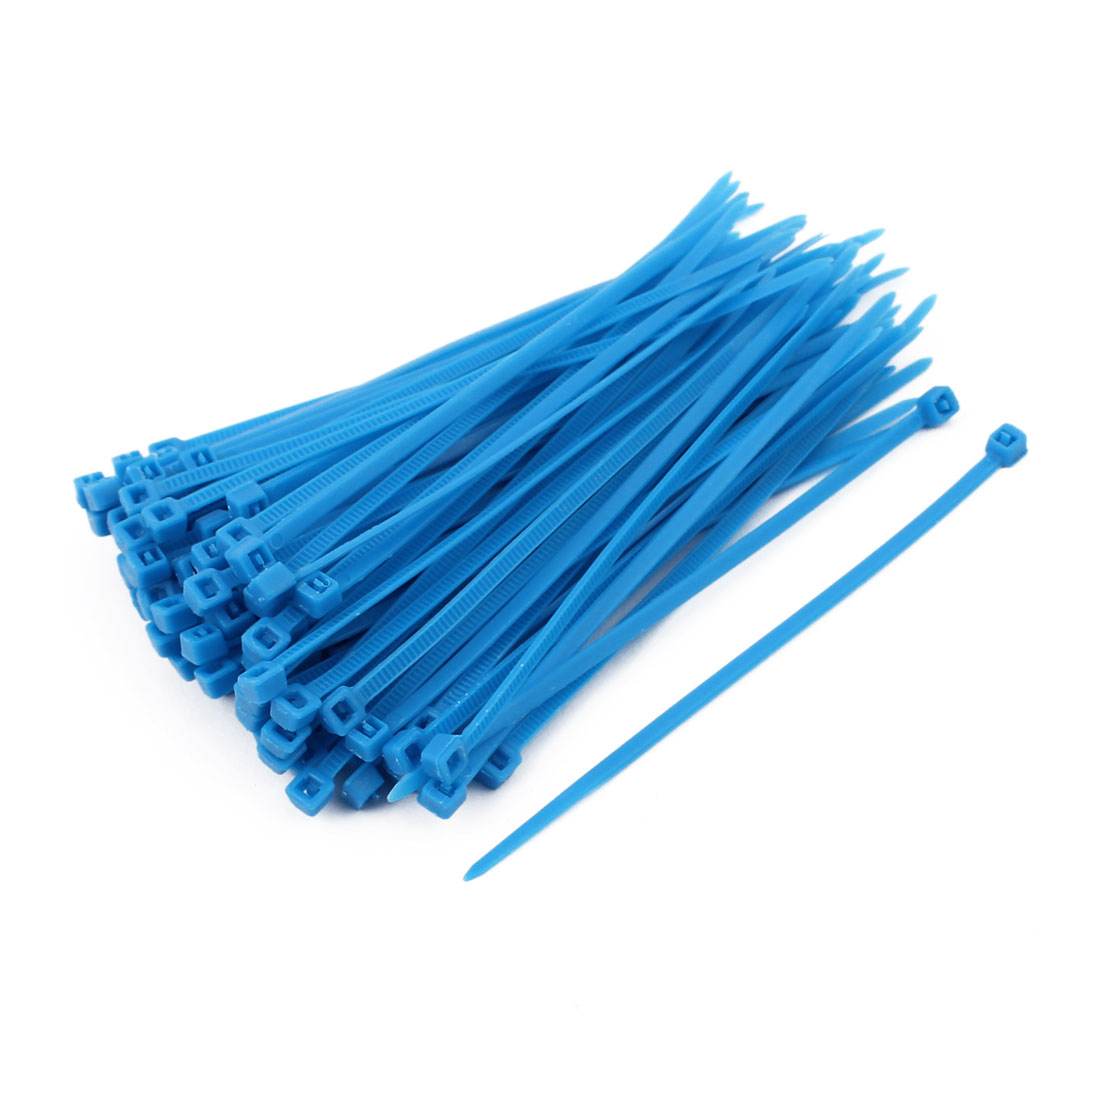 3mm x 100mm Self Locking Nylon Cable Ties Heavy Industrial Wire Zip Ties Blue 100pcs